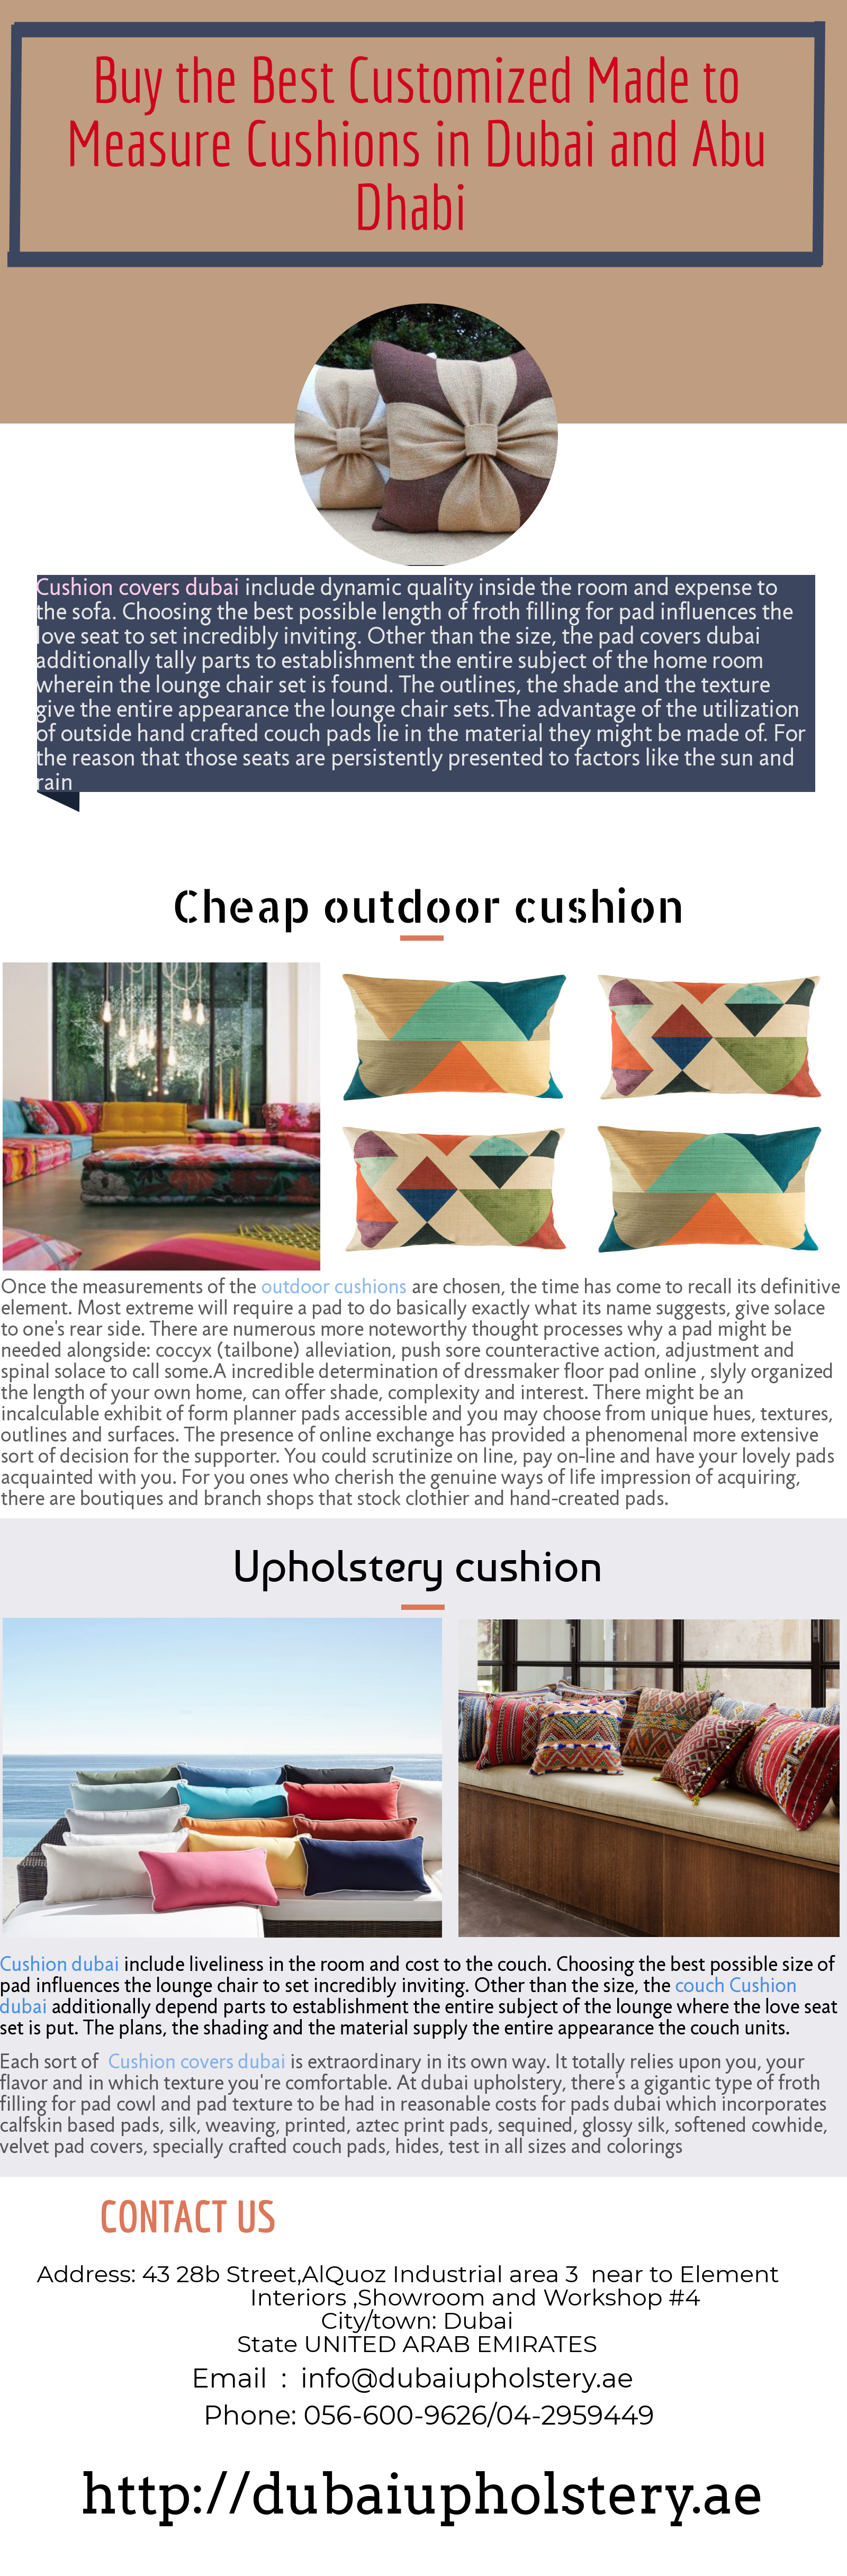 Buy the Best Customized Made to Measure Cushions in Dubai and Abu